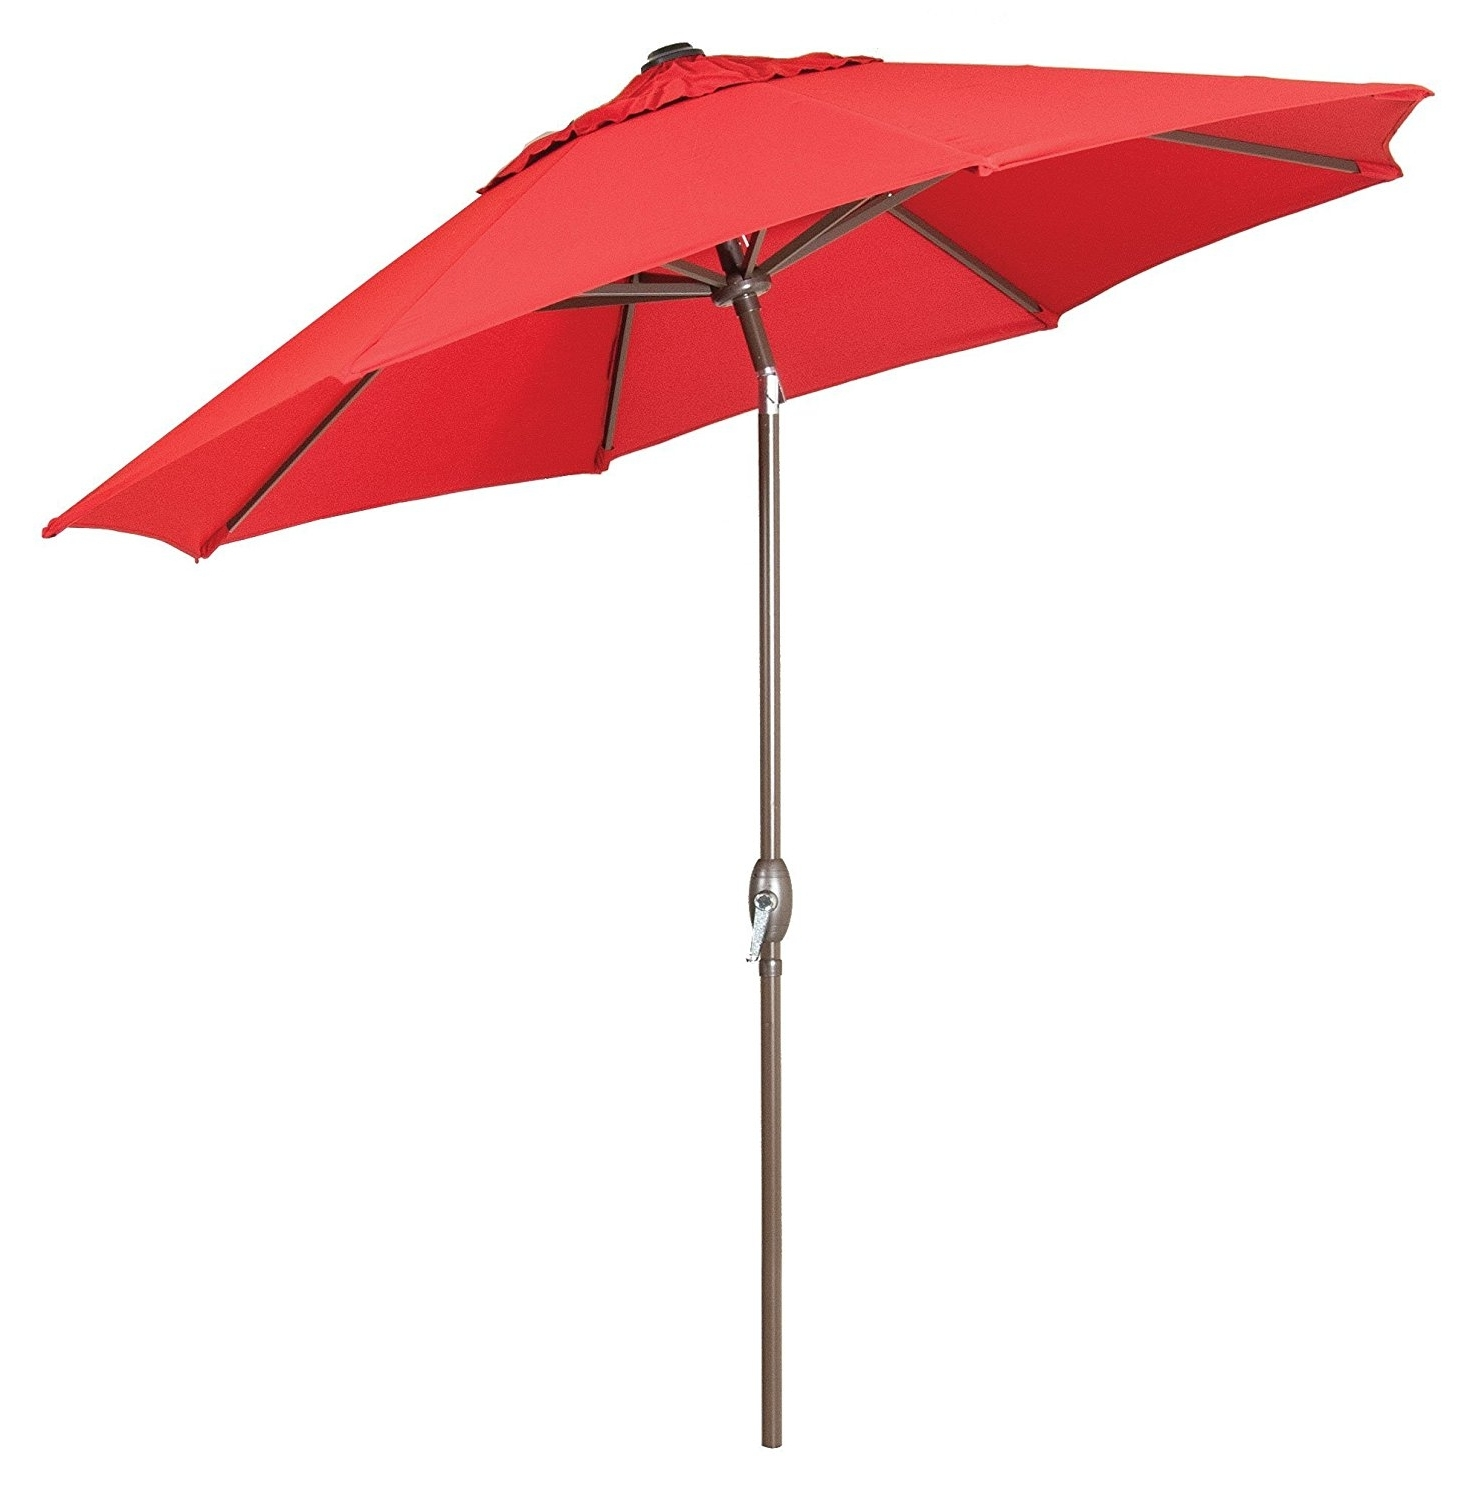 Most Recent Industrial Patio Umbrellas Awesome Amazon Generic 9Ft Red Sunshade For Amazon Patio Umbrellas (View 15 of 20)